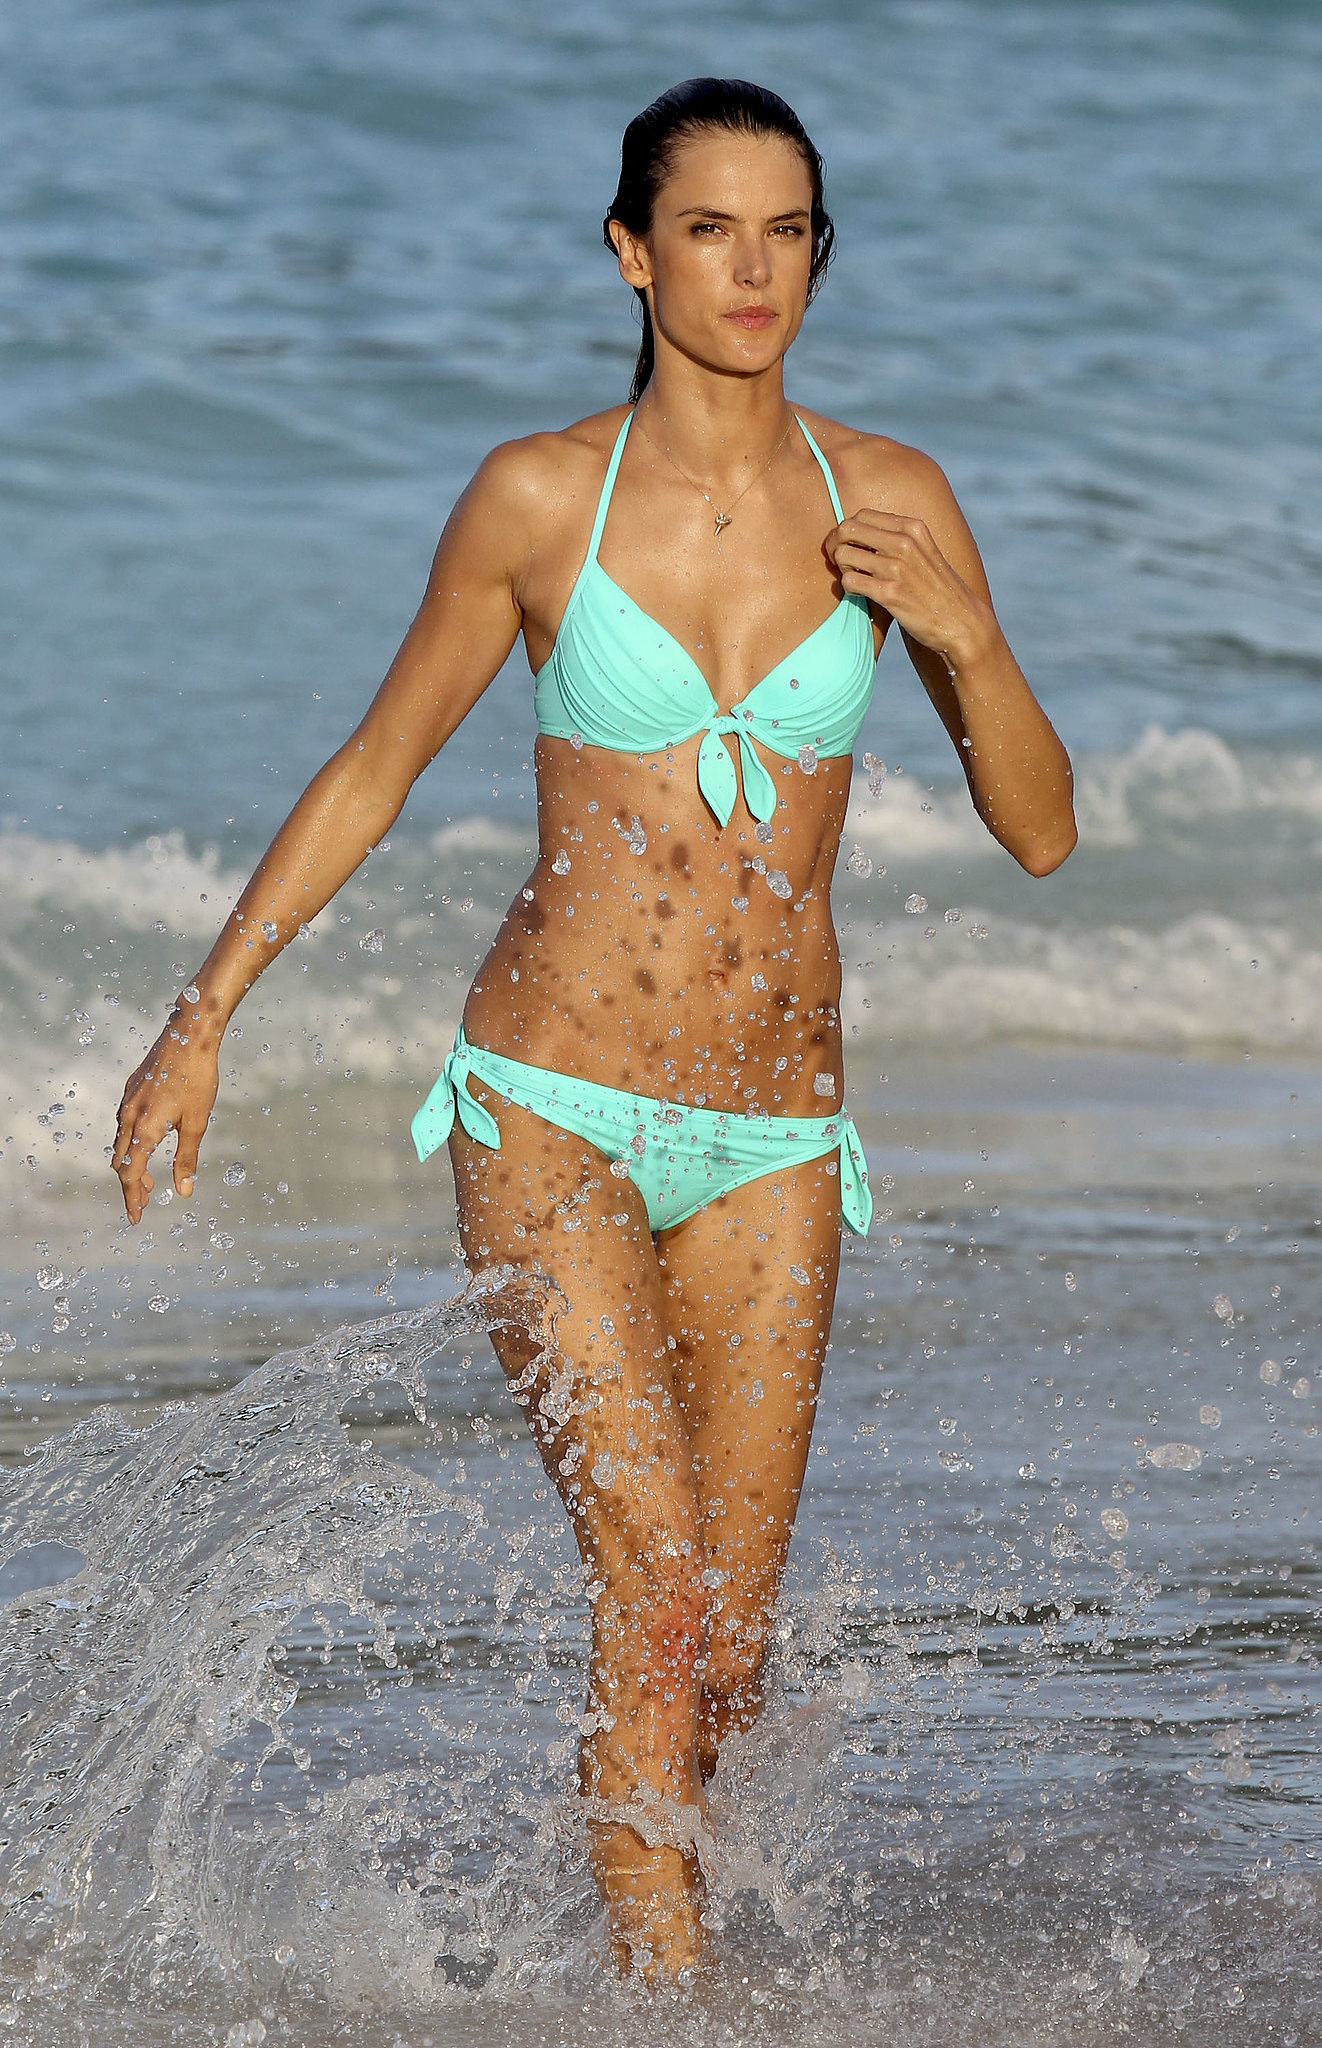 Alessandra Ambrosio splashed around in a bikini in St. Barts in January 2012.